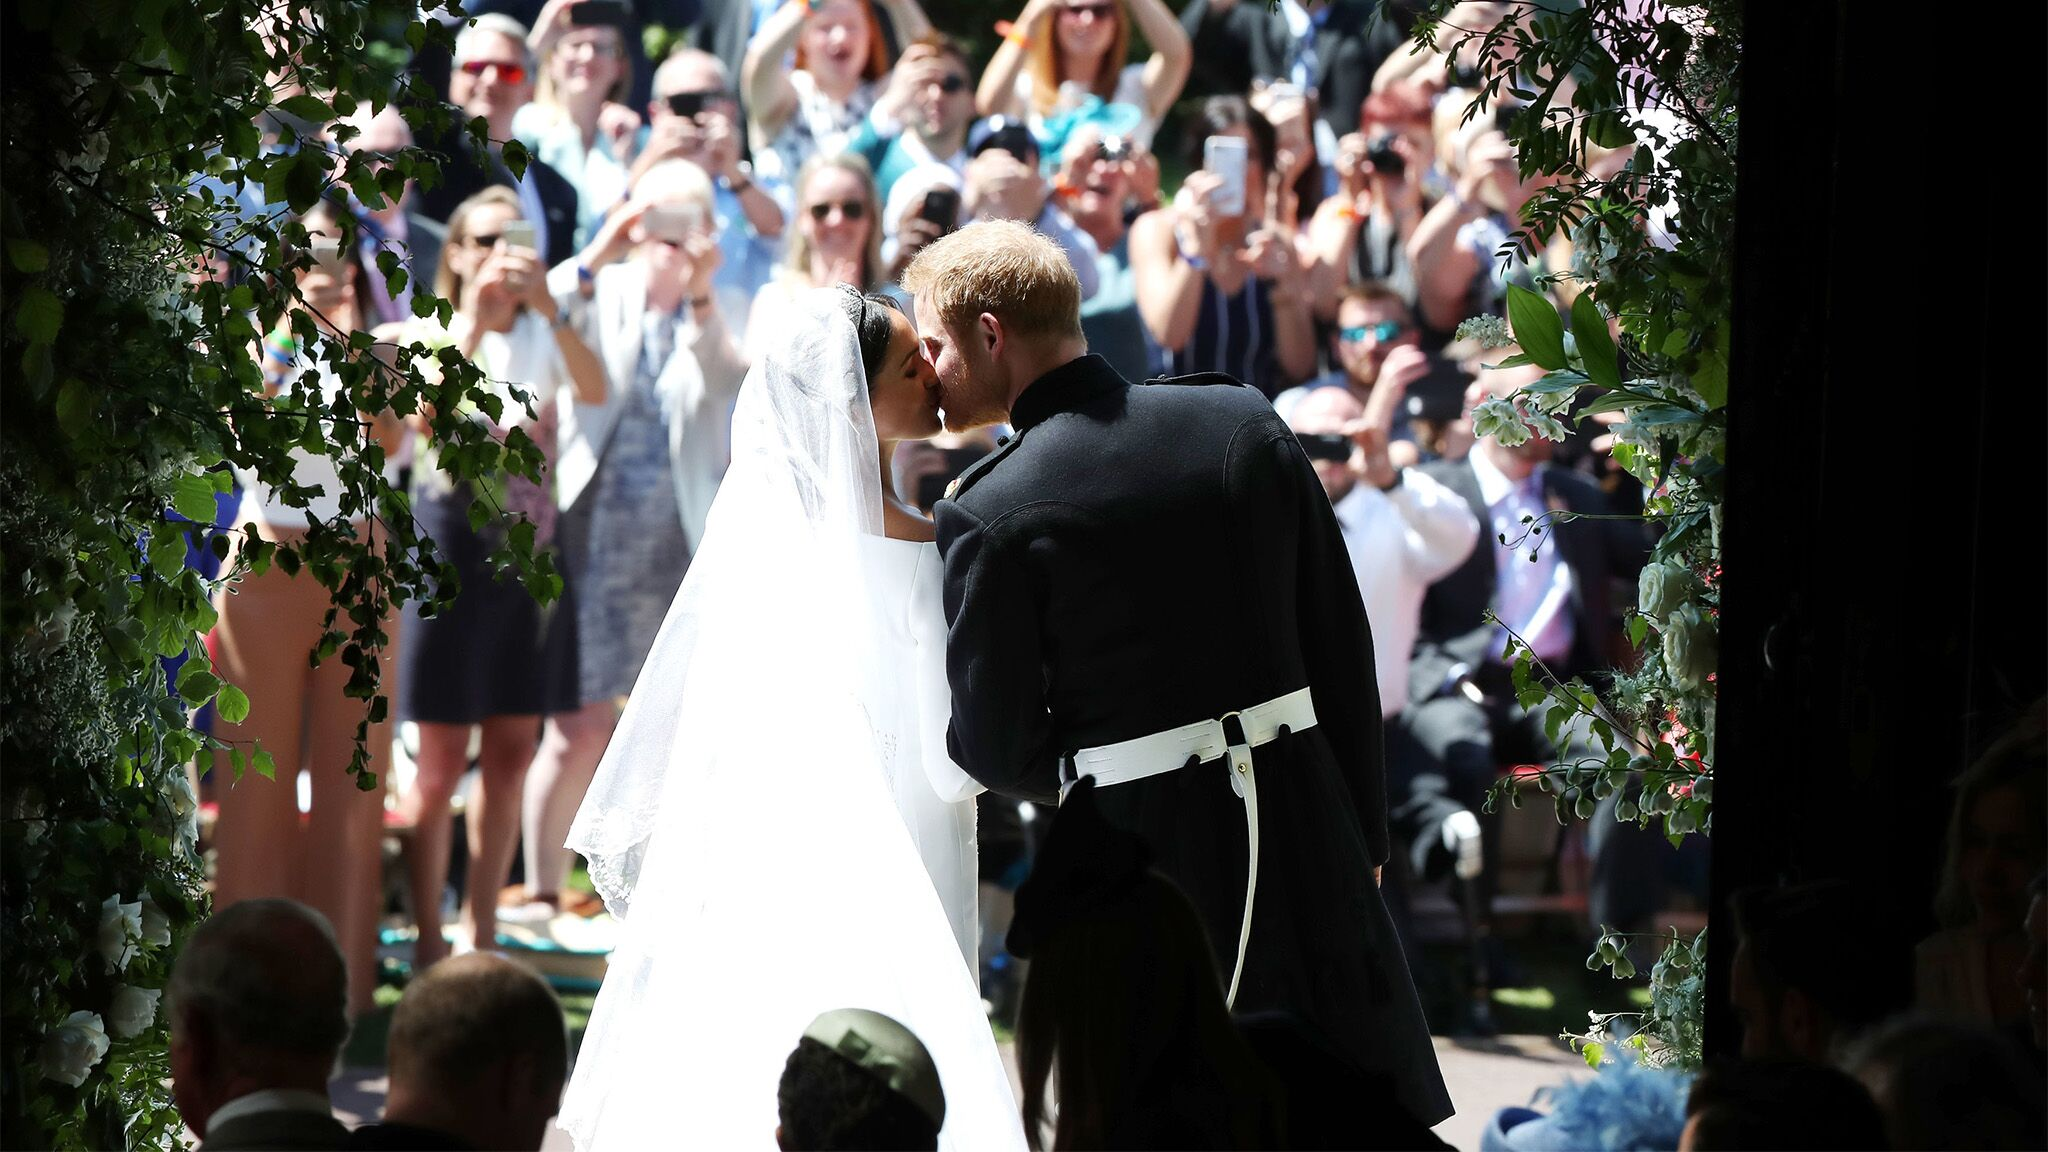 PHOTOS Mariage du Prince Harry et Meghan Markle  les plus beaux moments du  royal wedding , Voici